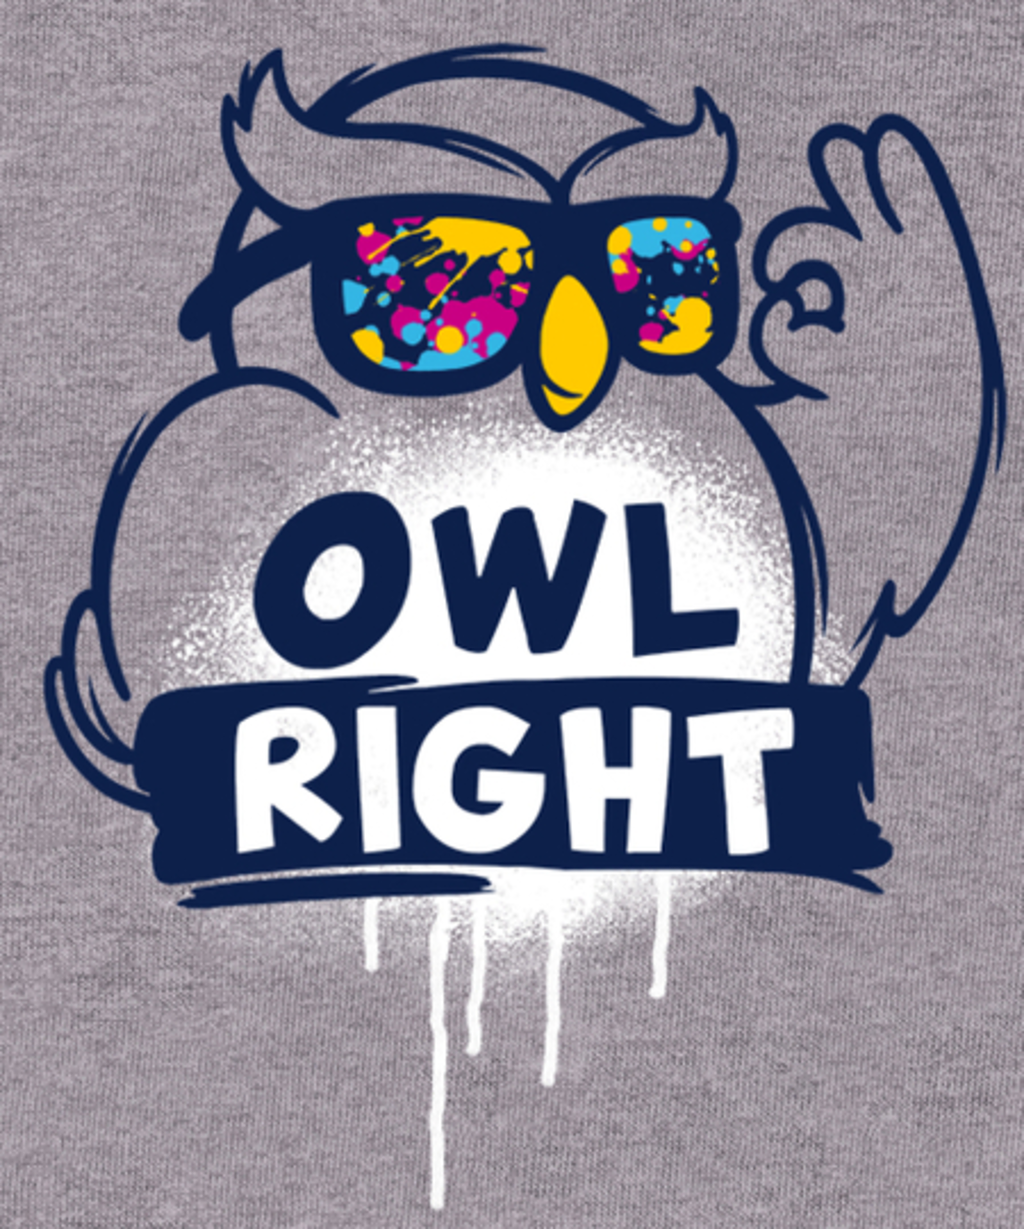 Qwertee: Owl right